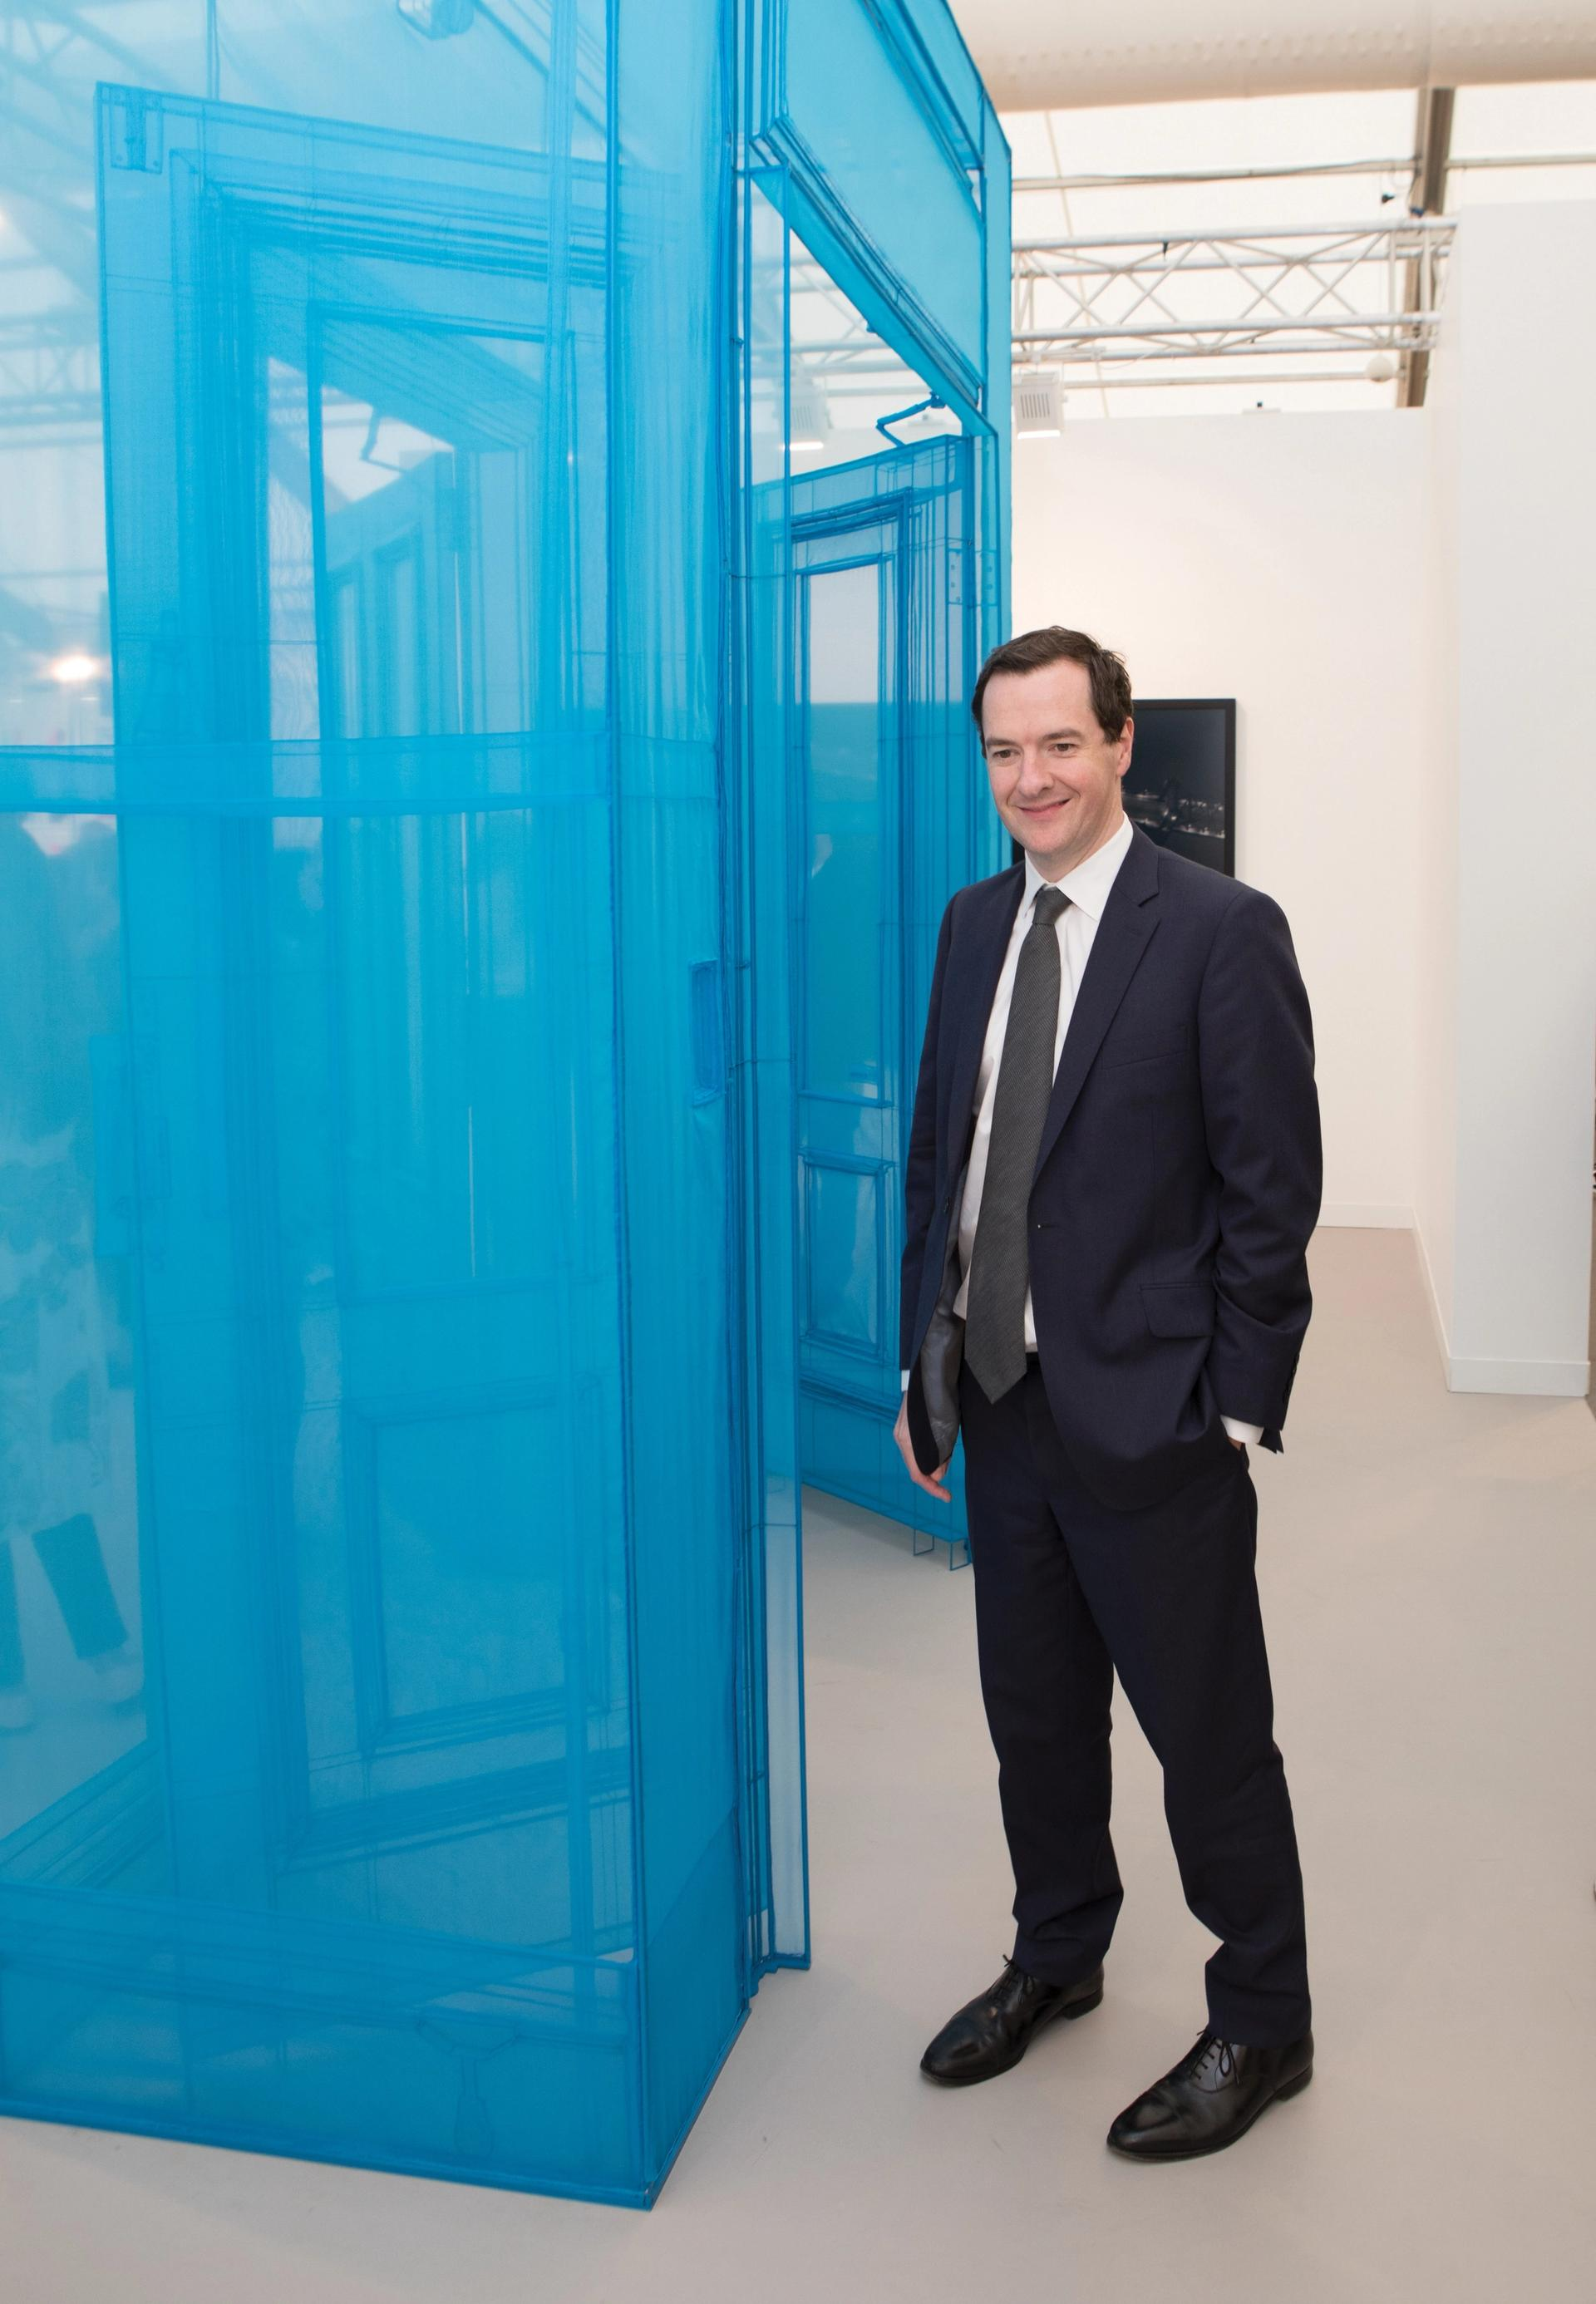 George Osborne, formerly Chancellor of the Exchequer, at Frieze London in 2017 Photo: © David Owens